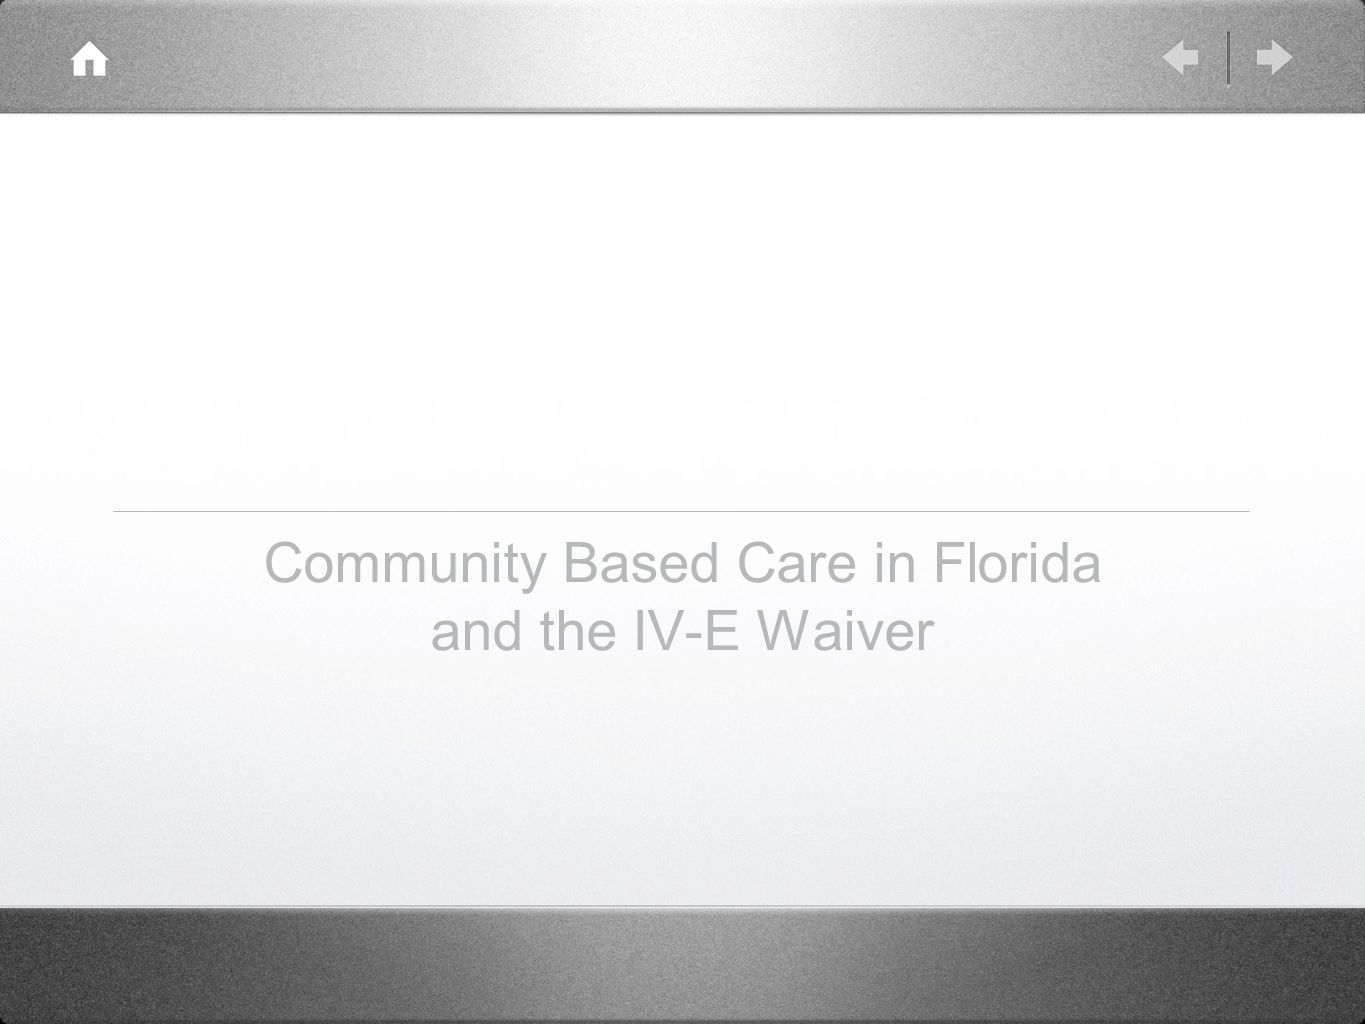 Florida s Waiver - Approved 2006 Impact of Community Based Care and Waiver New Federal Waiver - Authorized 2011